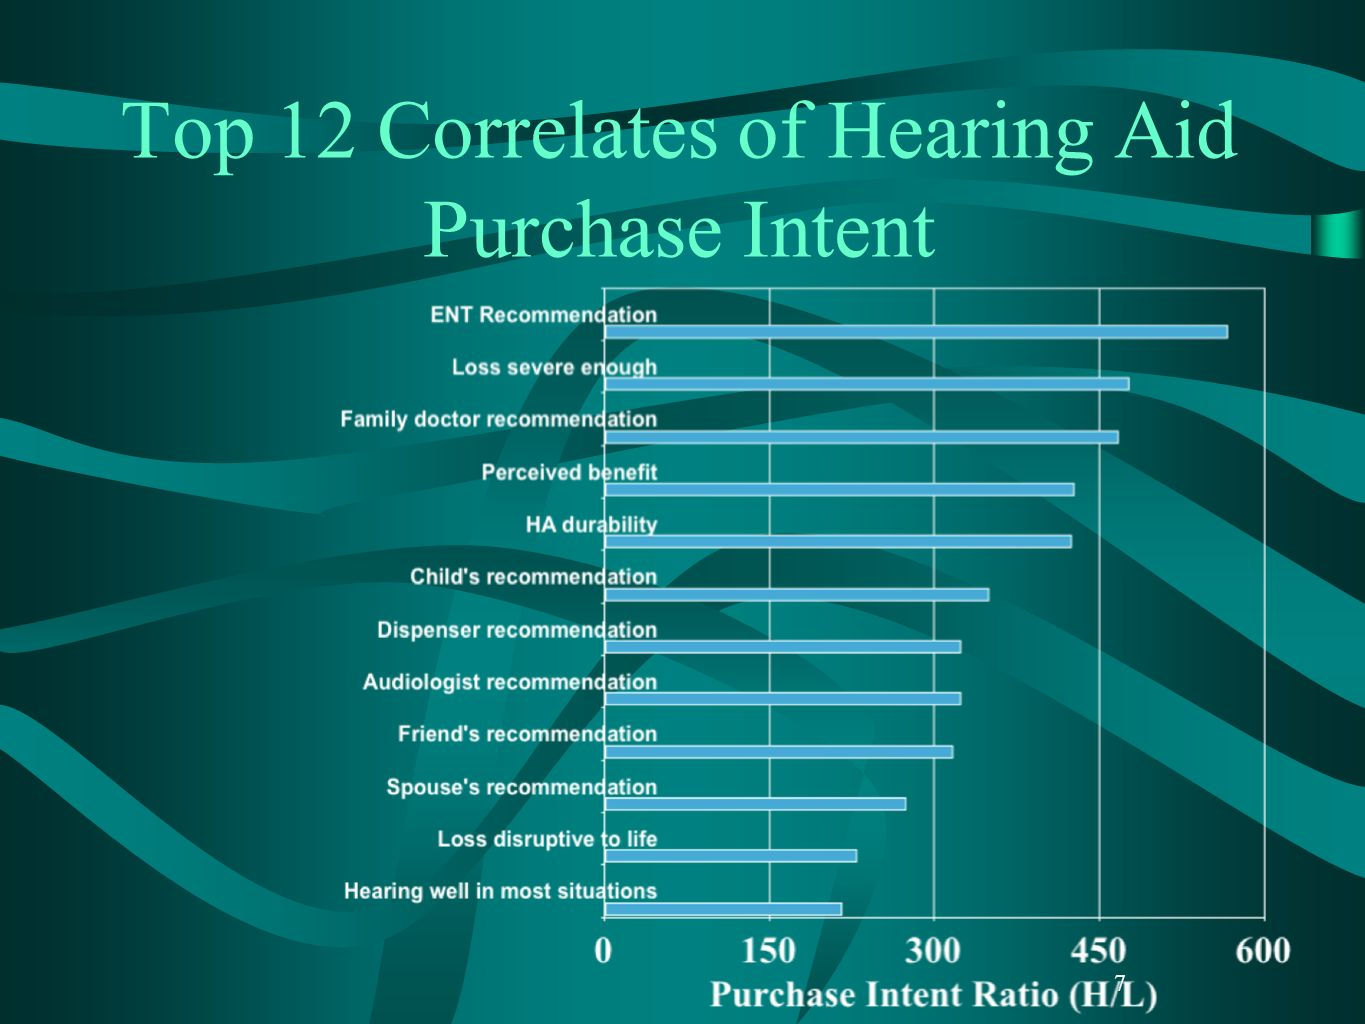 Top 12 Correlates of Hearing Aid Purchase Intent